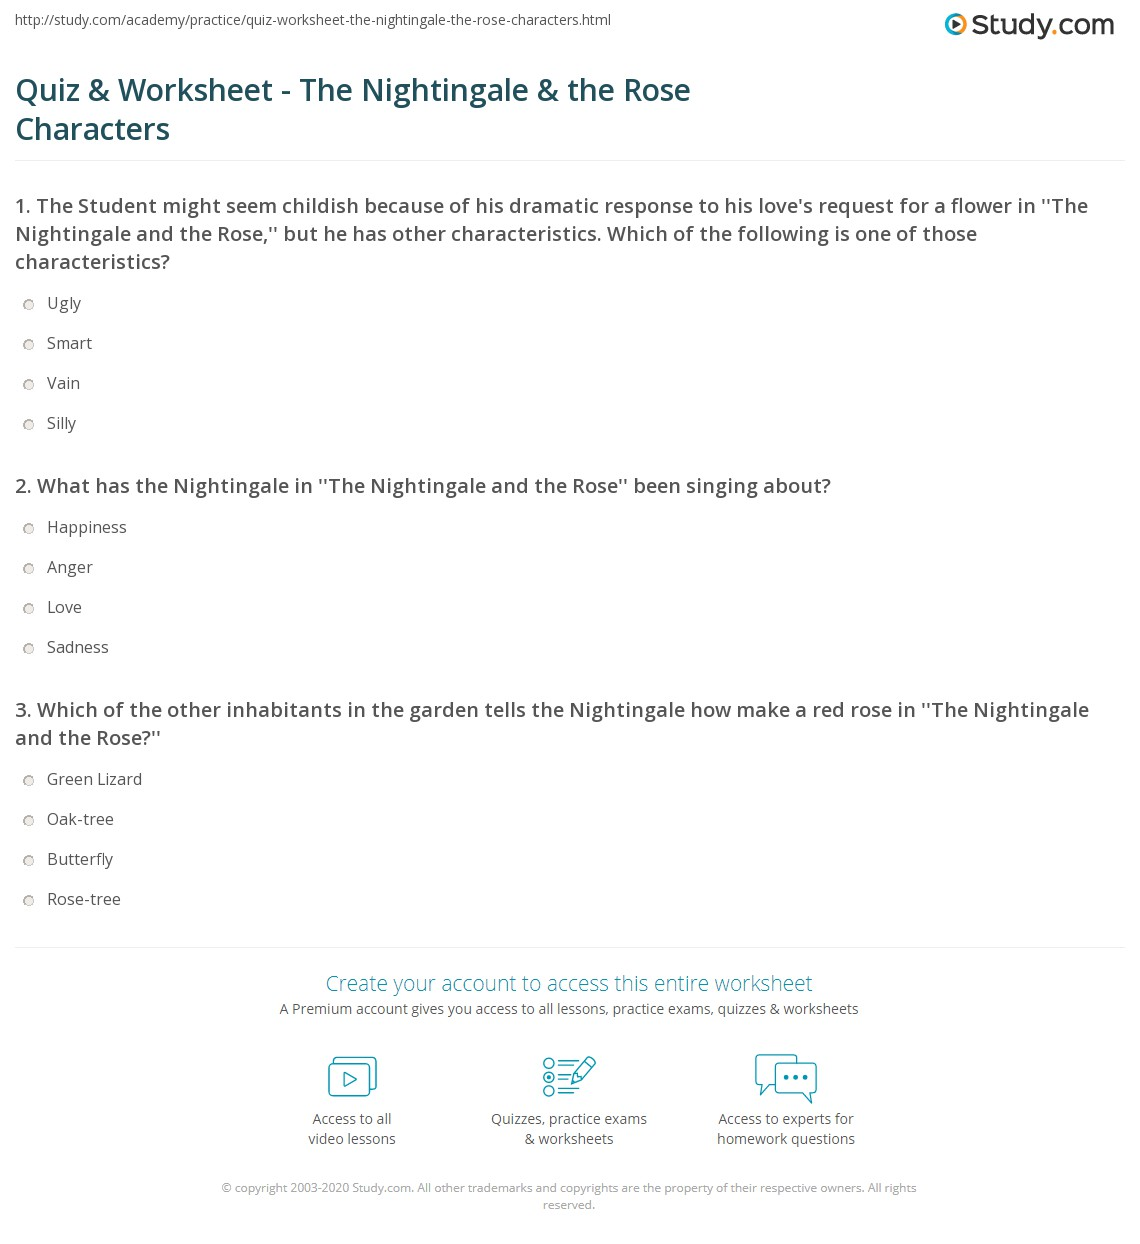 the nightingale and the rose by oscar wilde analysis